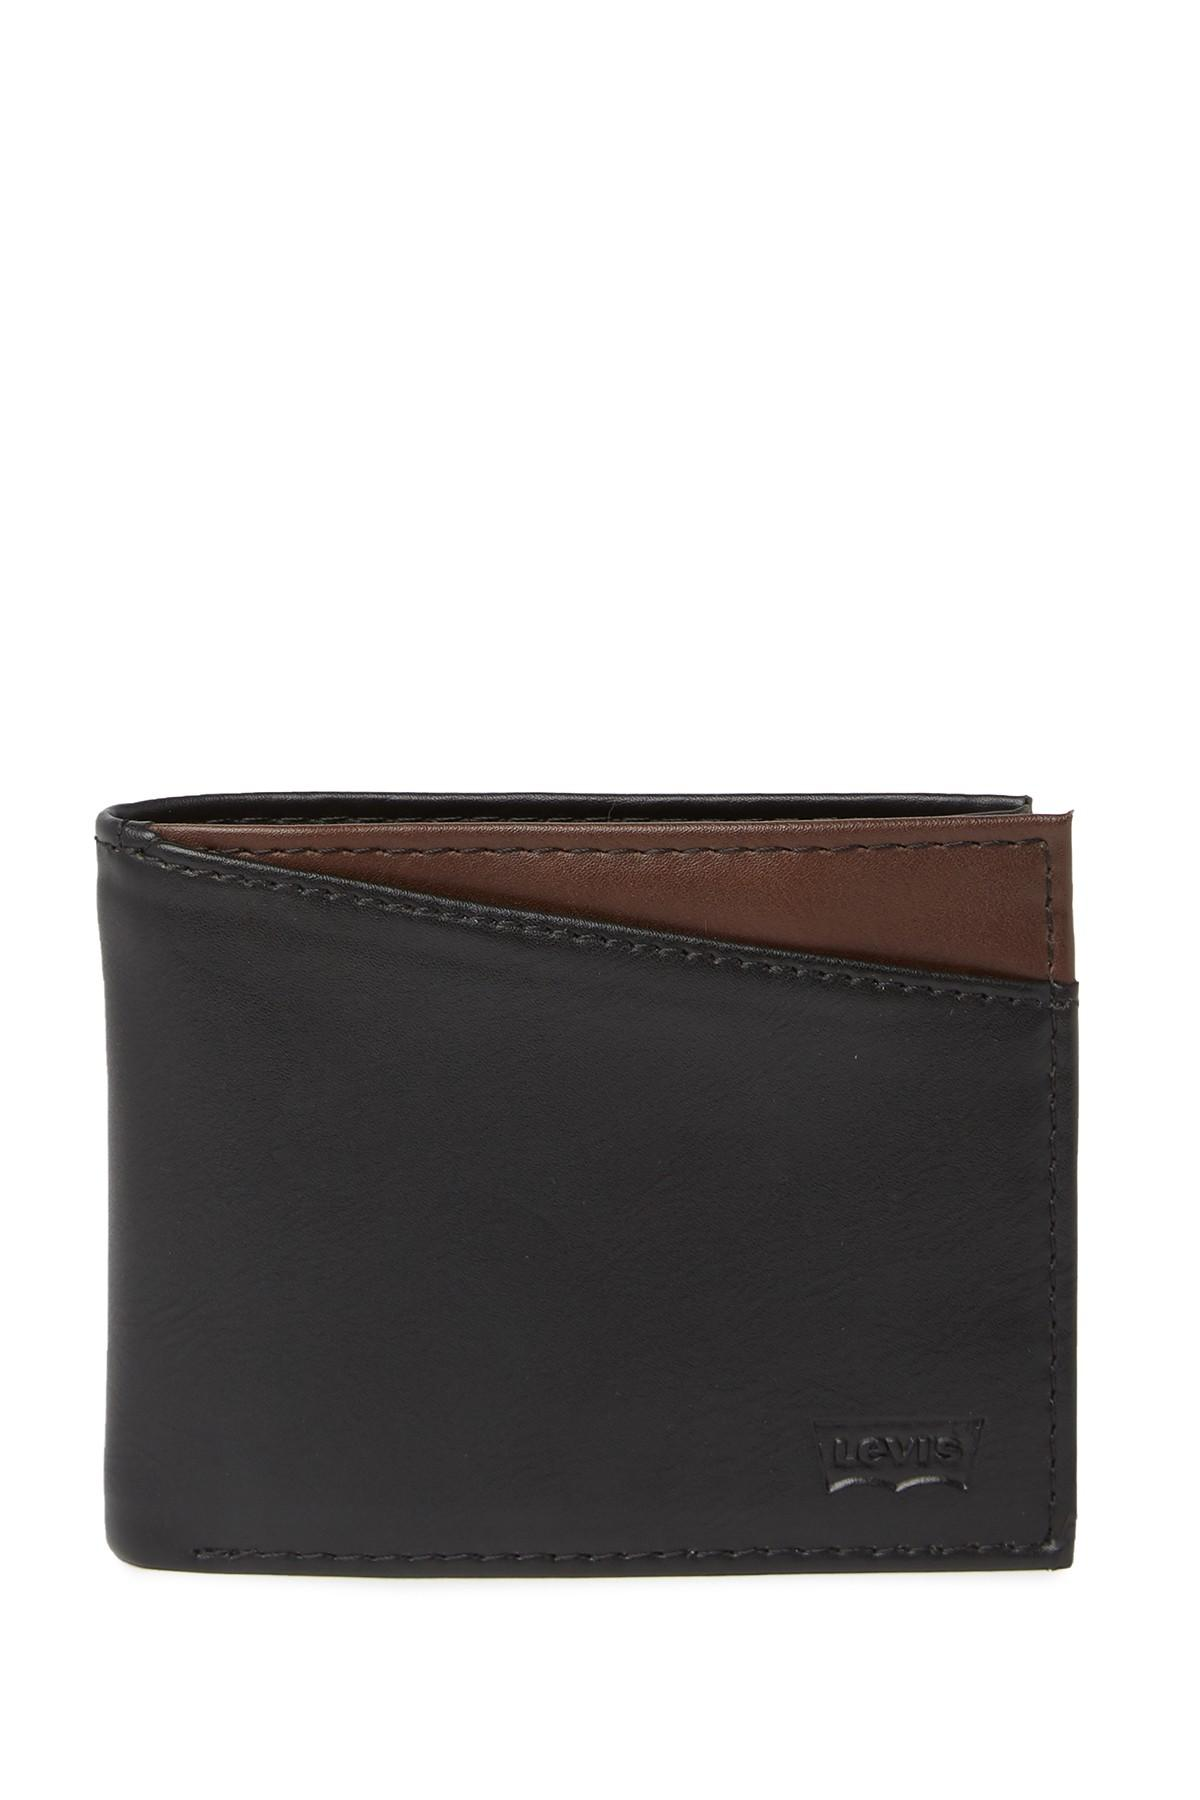 2e997f737 Lyst - Levi's Conner X-capacity Slim-fold Leather Wallet in Black ...